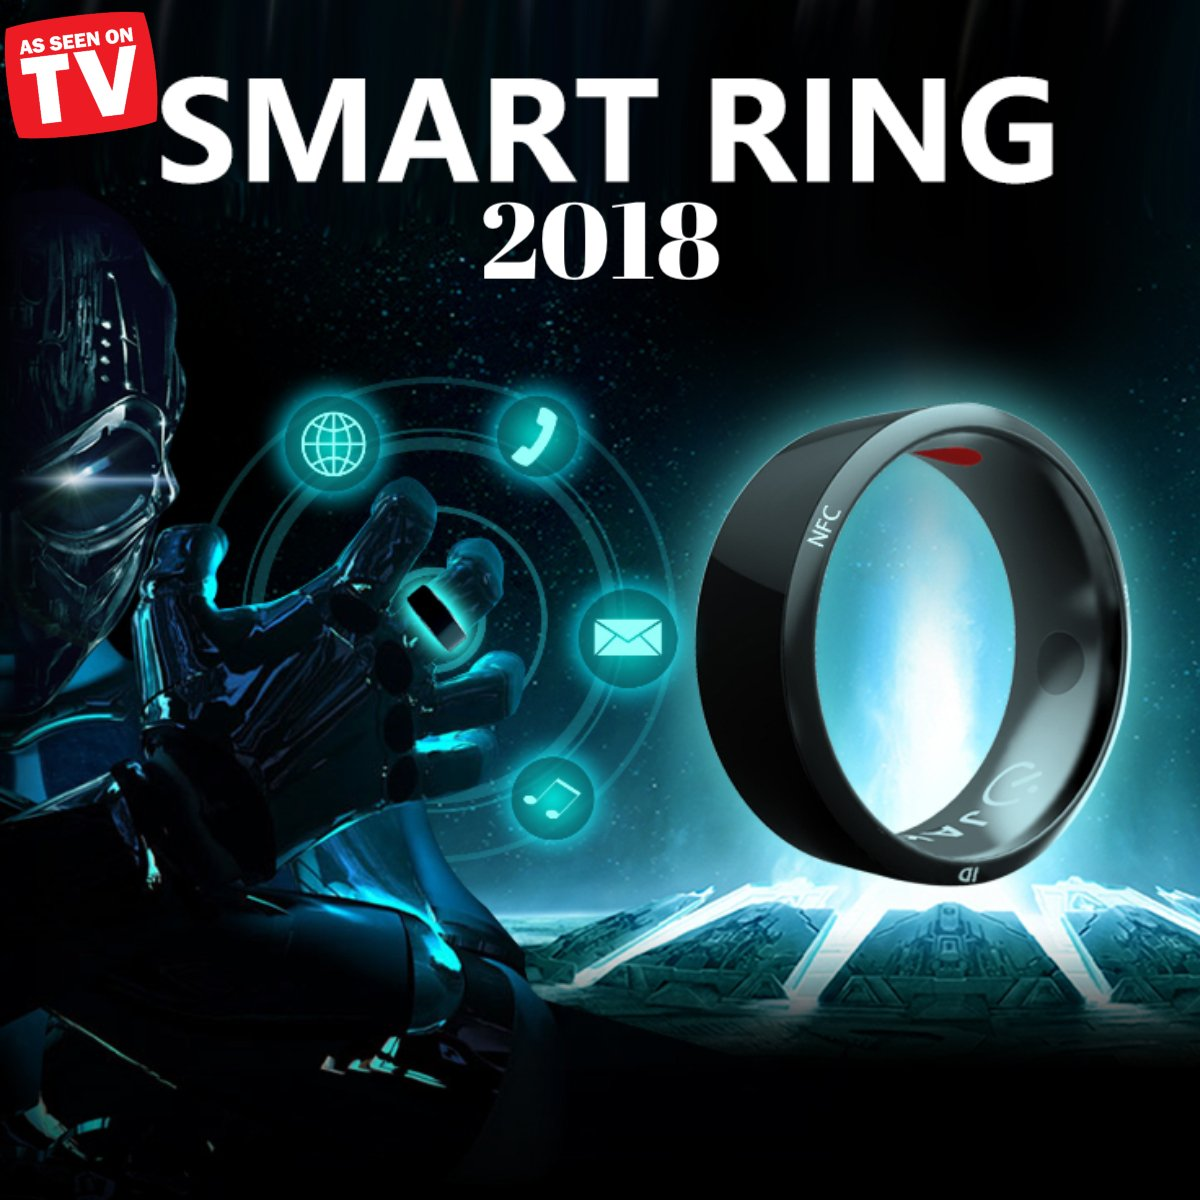 AS SEEN ON TV -SMART RING-